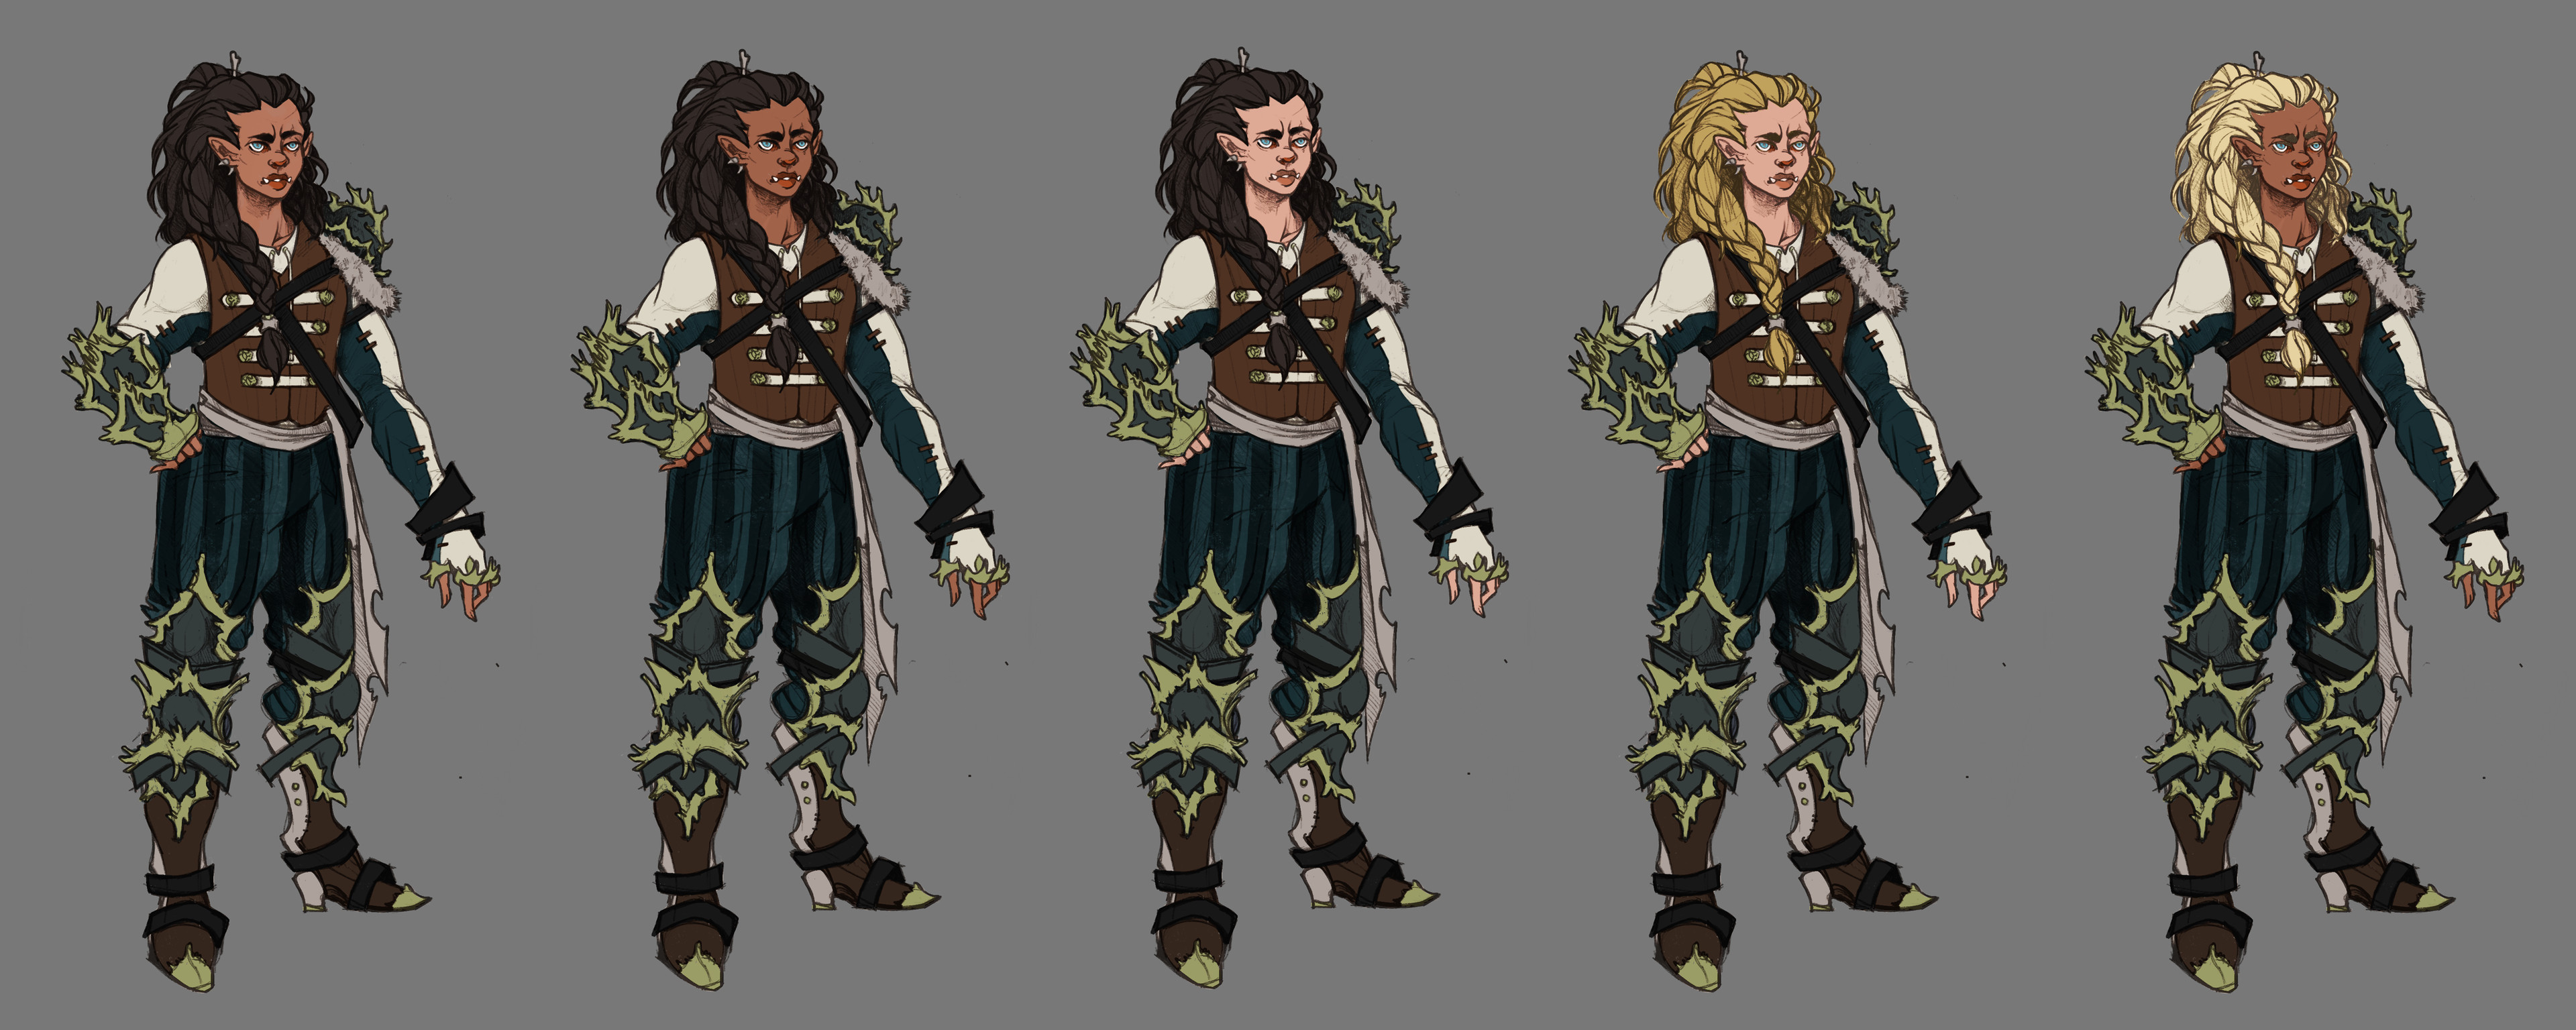 Skin tone tests, referencing Jaina, Mag'har orcs, and Thrall's other children. Final is on the far left.